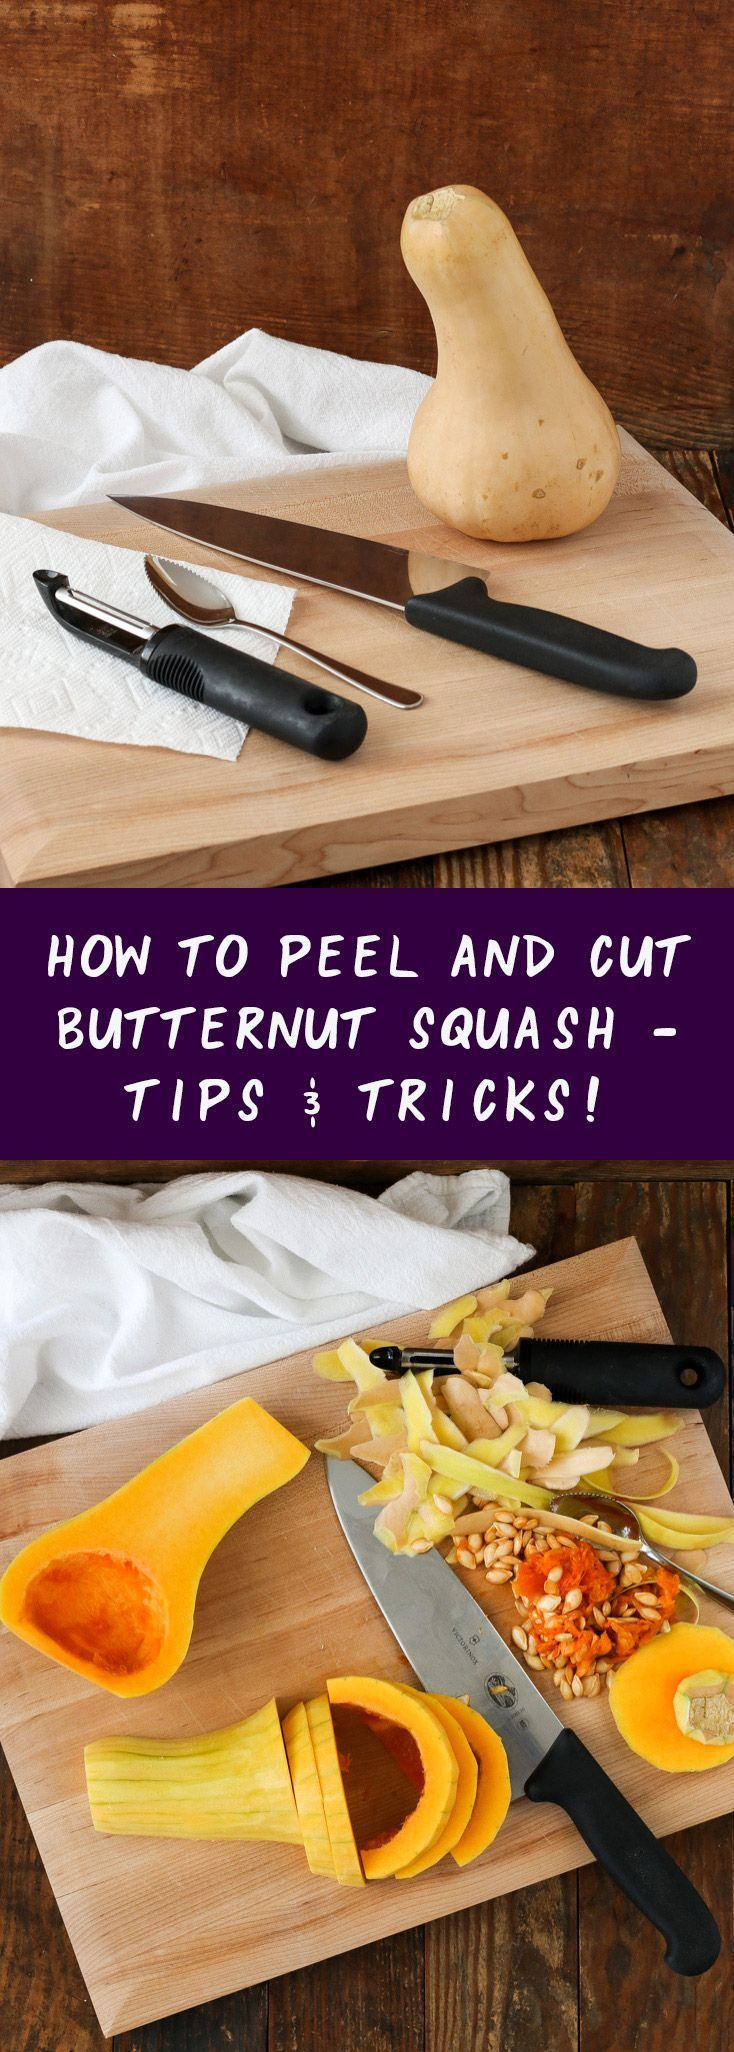 a quick tutorial on how to peel and cut butternut squash the easy way – without it slipping out of your hands or cutting yourself. see how a paper towel makes all the difference! #squash #tips